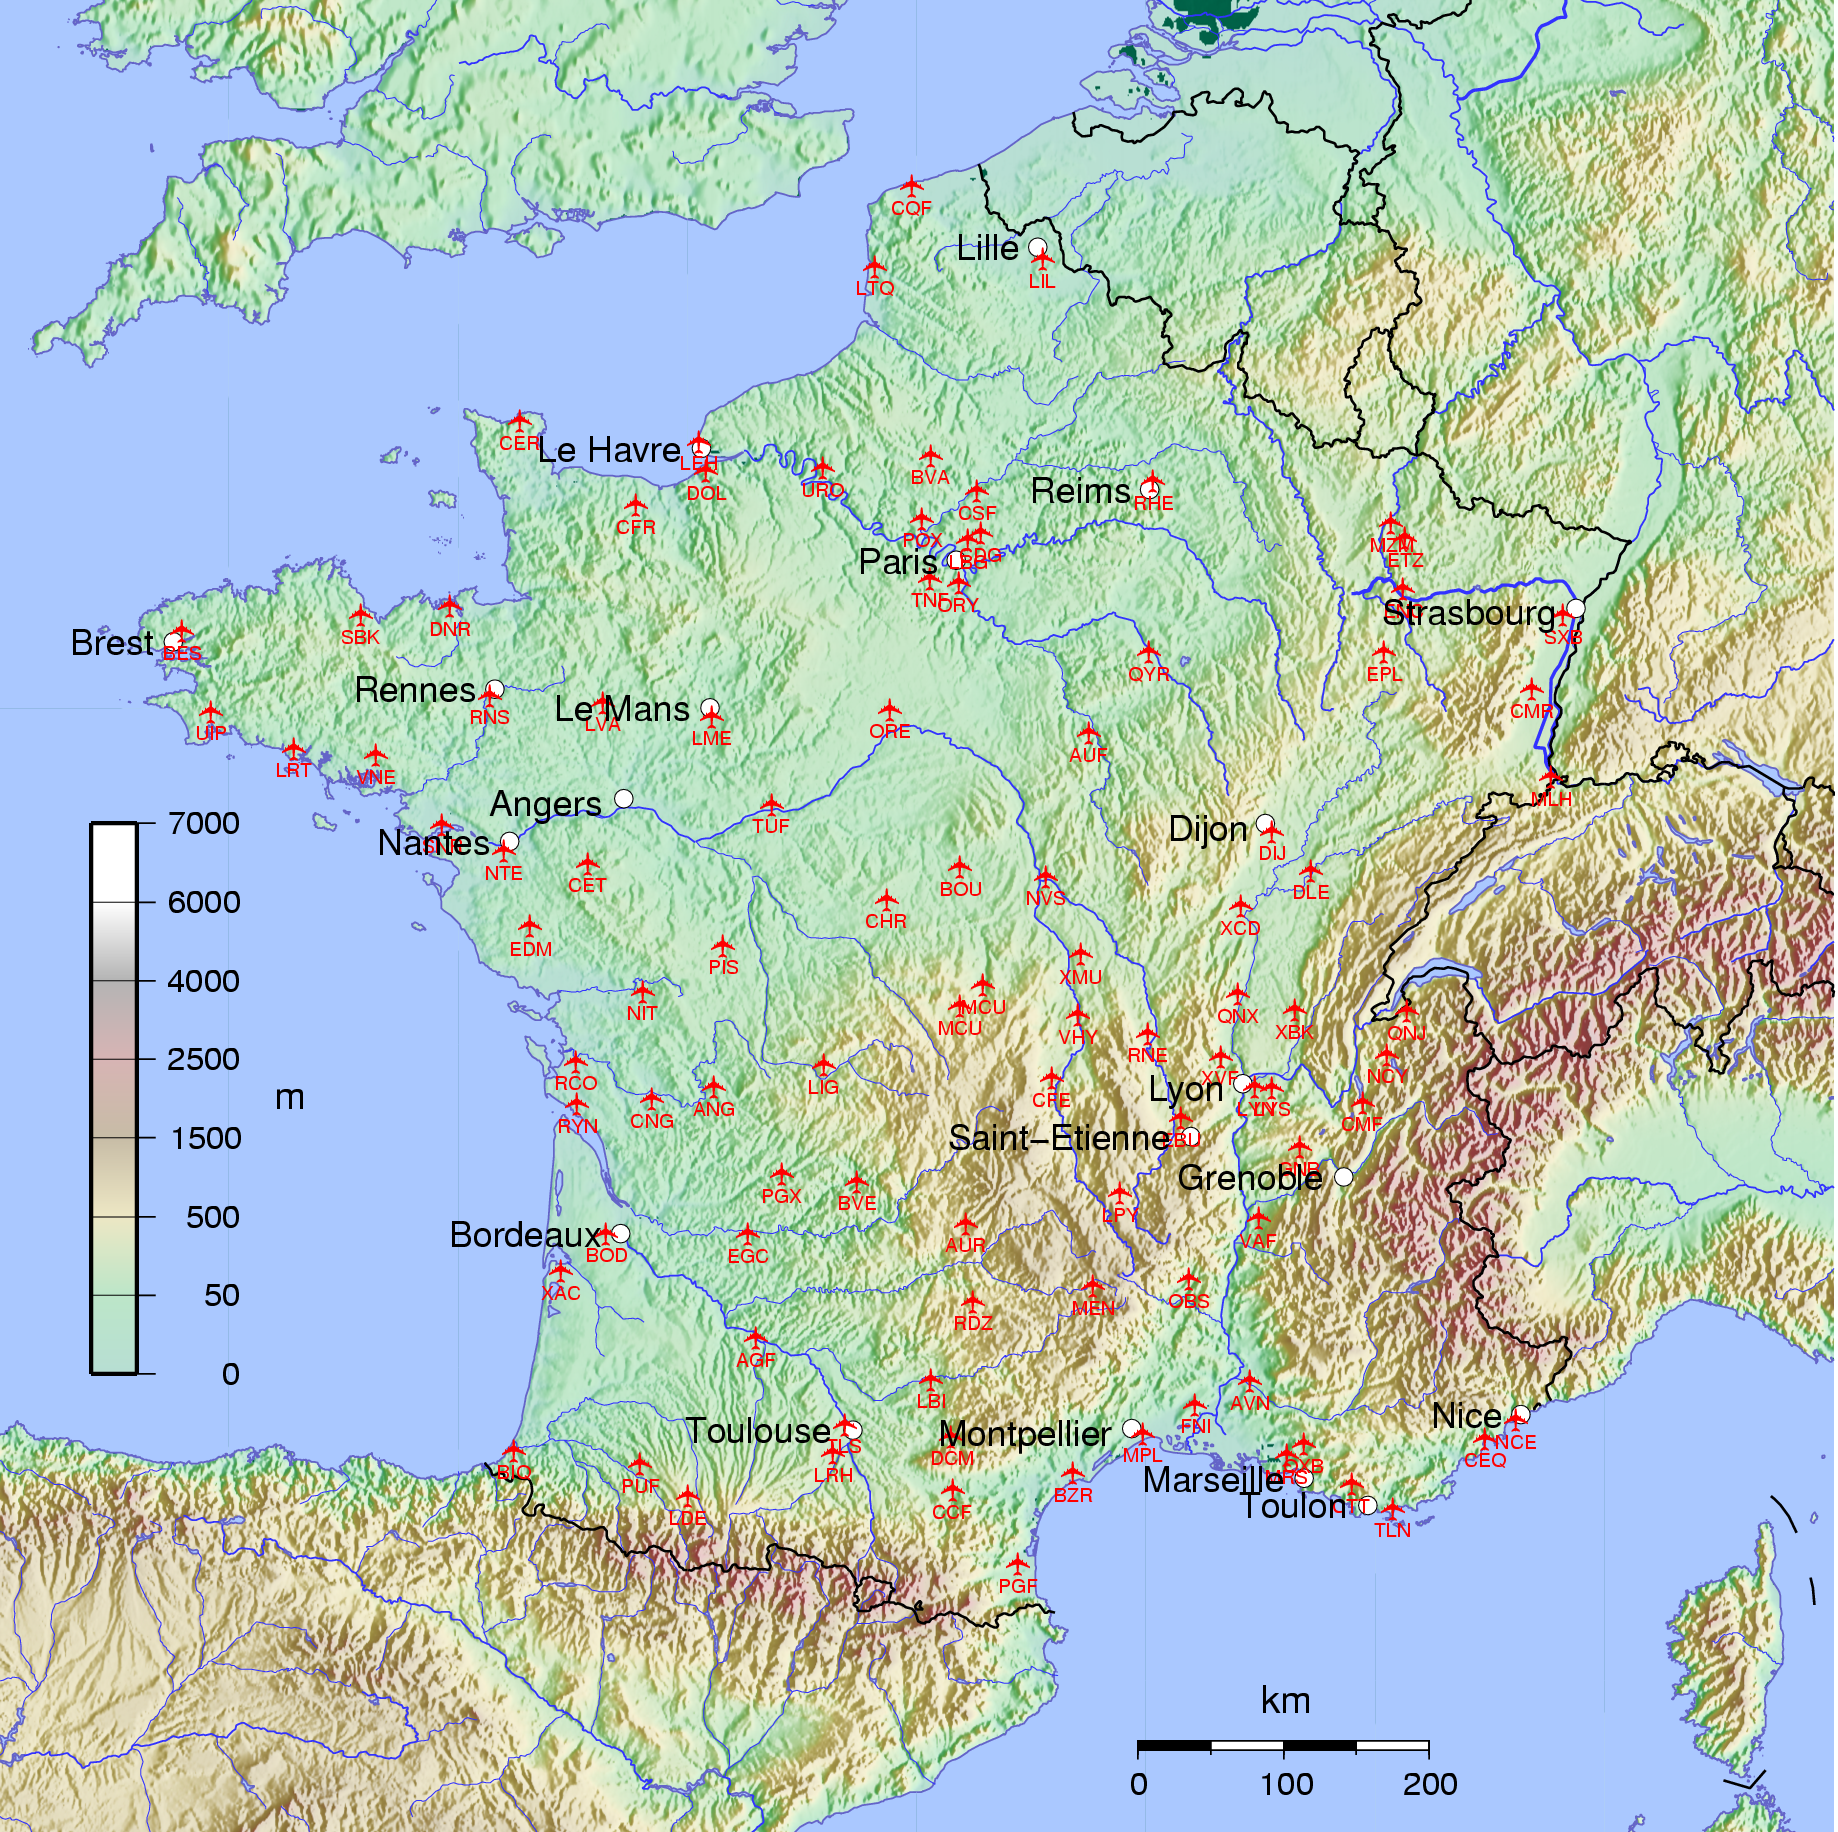 french international airports map List Of Airports In France Wikipedia french international airports map